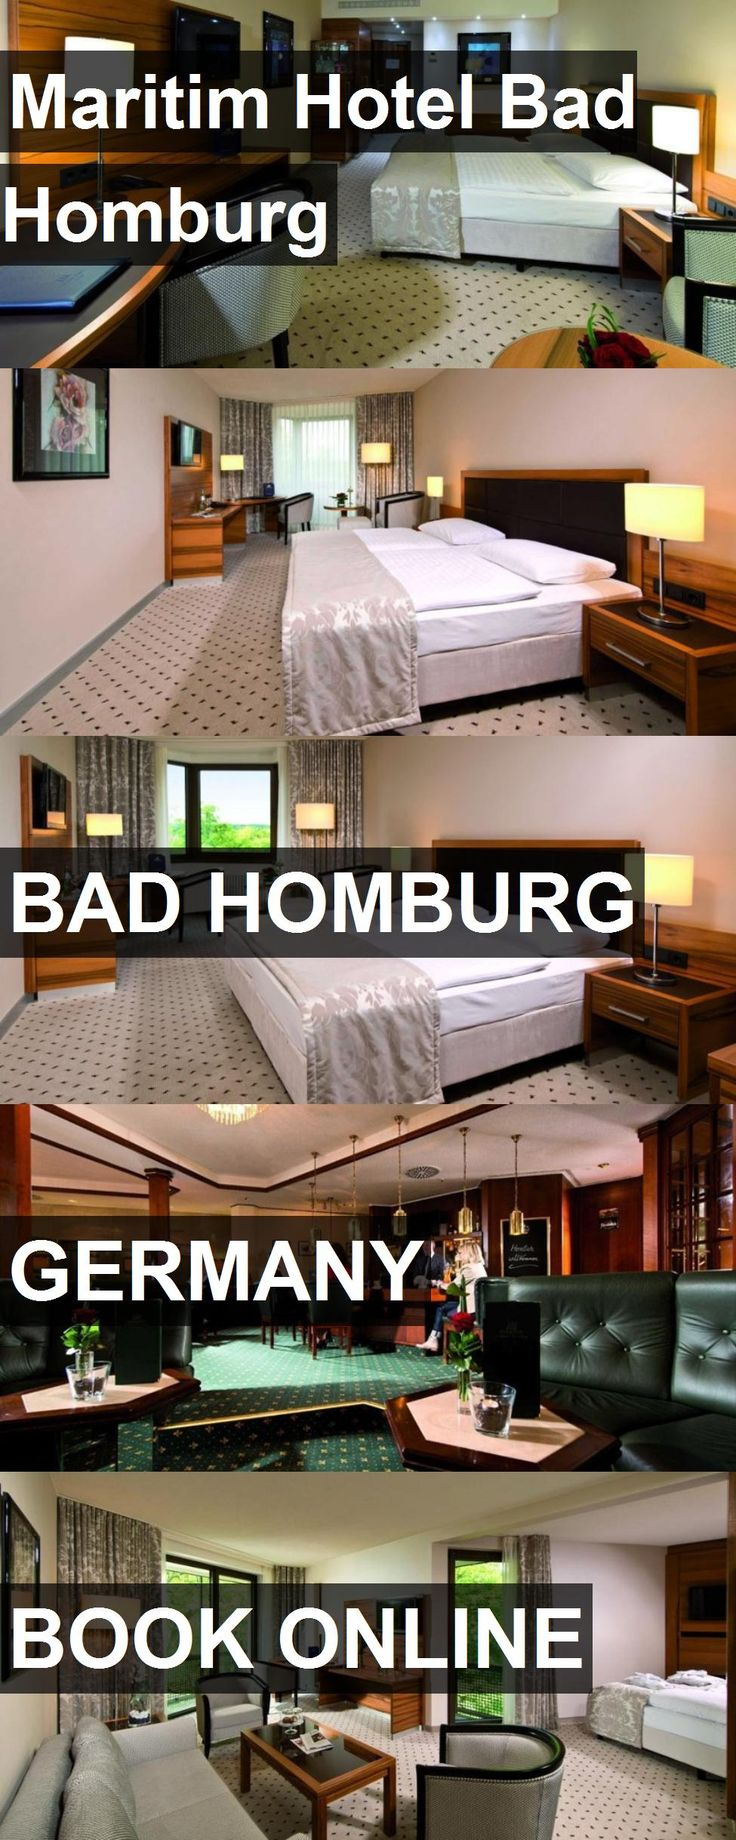 Hotel Maritim Hotel Bad Homburg in Bad Homburg, Germany. For more information, photos, reviews and best prices please follow the link. #Germany #BadHomburg #MaritimHotelBadHomburg #hotel #travel #vacation